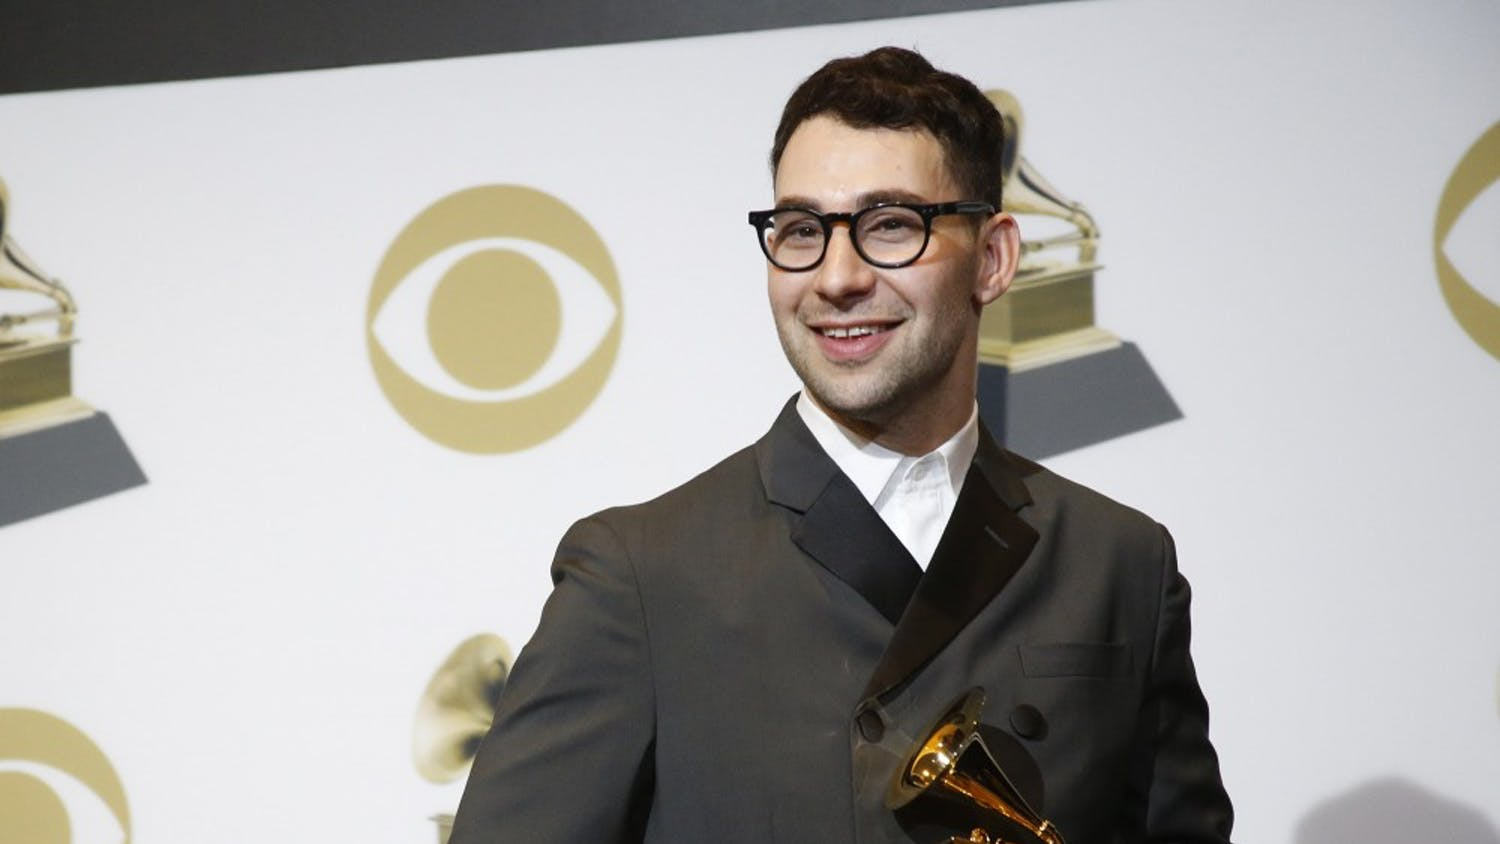 Jack Antonoff backstage during the 61st Grammy Awards at Staples Center in Los Angeles on Sunday, Feb. 10, 2019. (Taylor Arthur/Los Angeles Times/TNS)